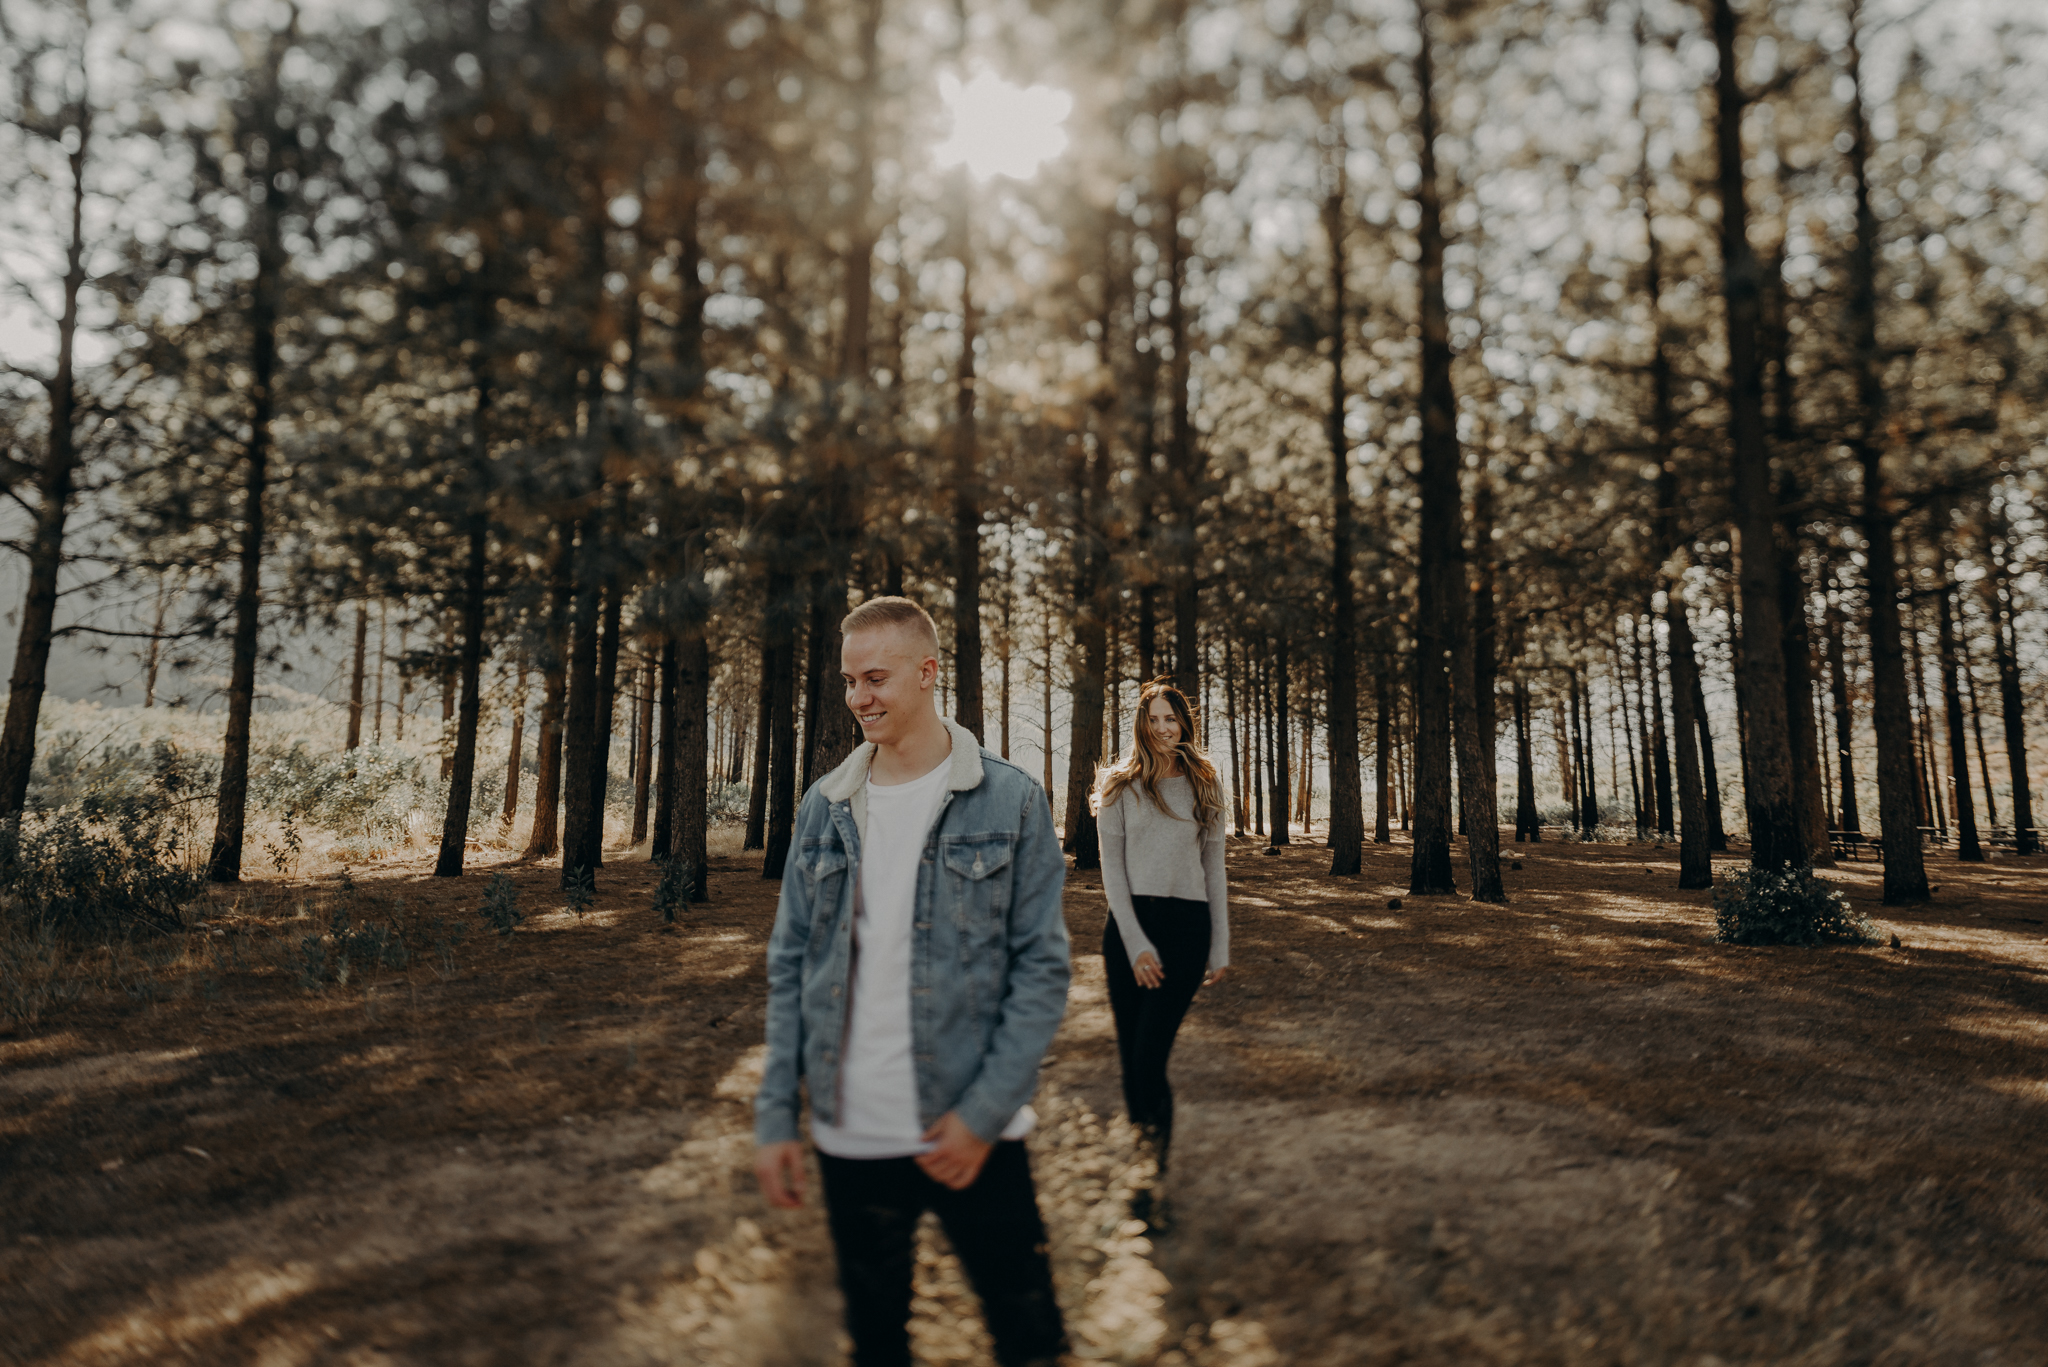 Isaiah + Taylor Photography - Los Angeles Forest Engagement, Laid-back Wedding Photographer-020.jpg